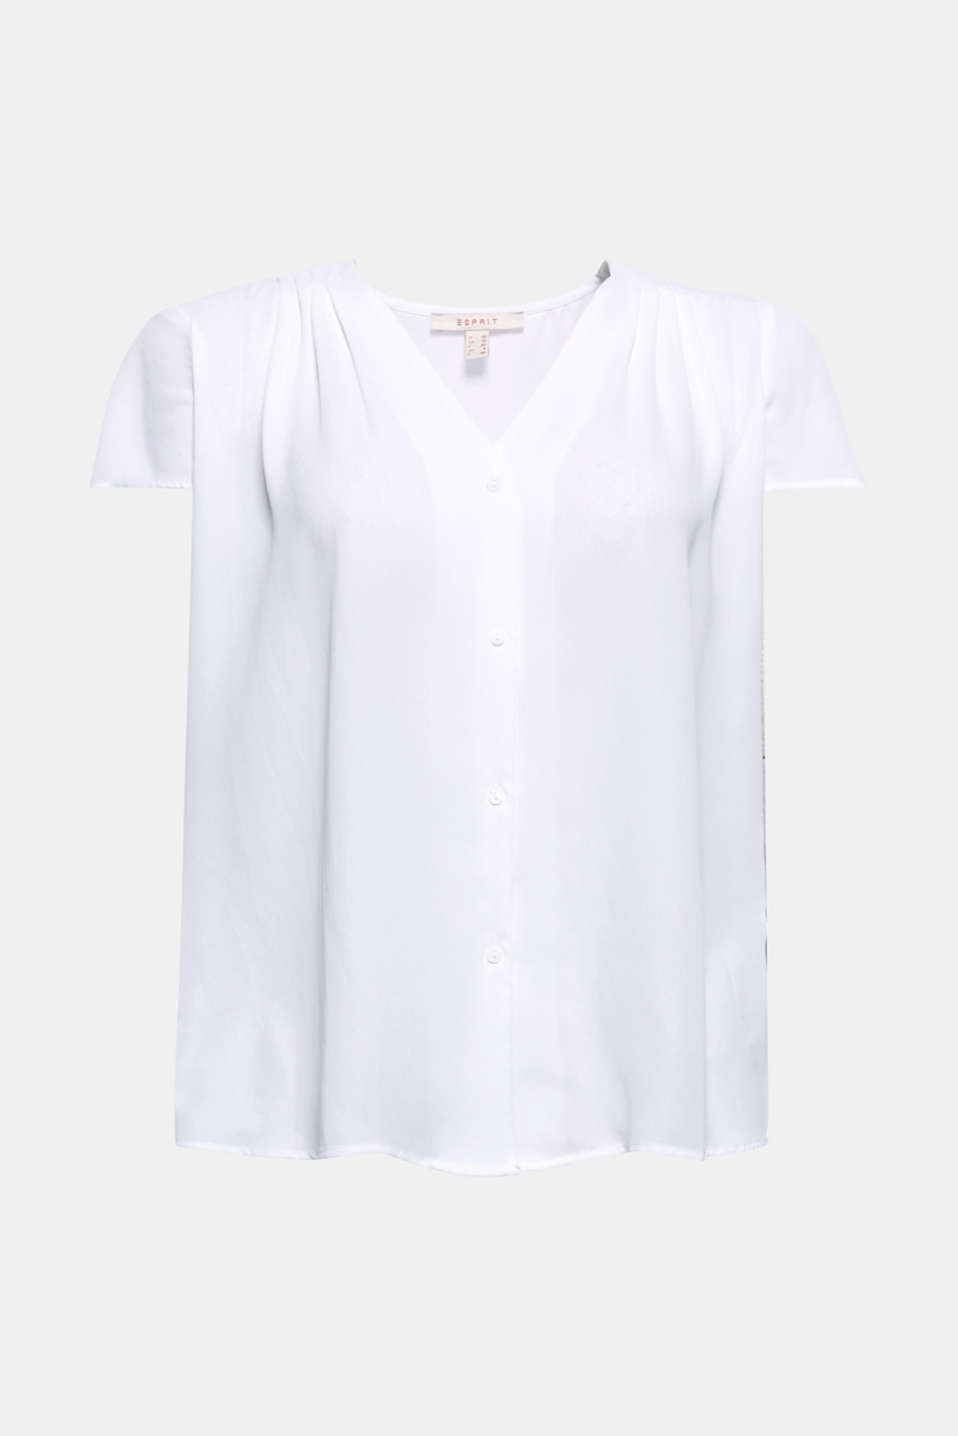 For a feminine business look, this V-neck blouse with shoulder pleats is perfect for mixing and matching!